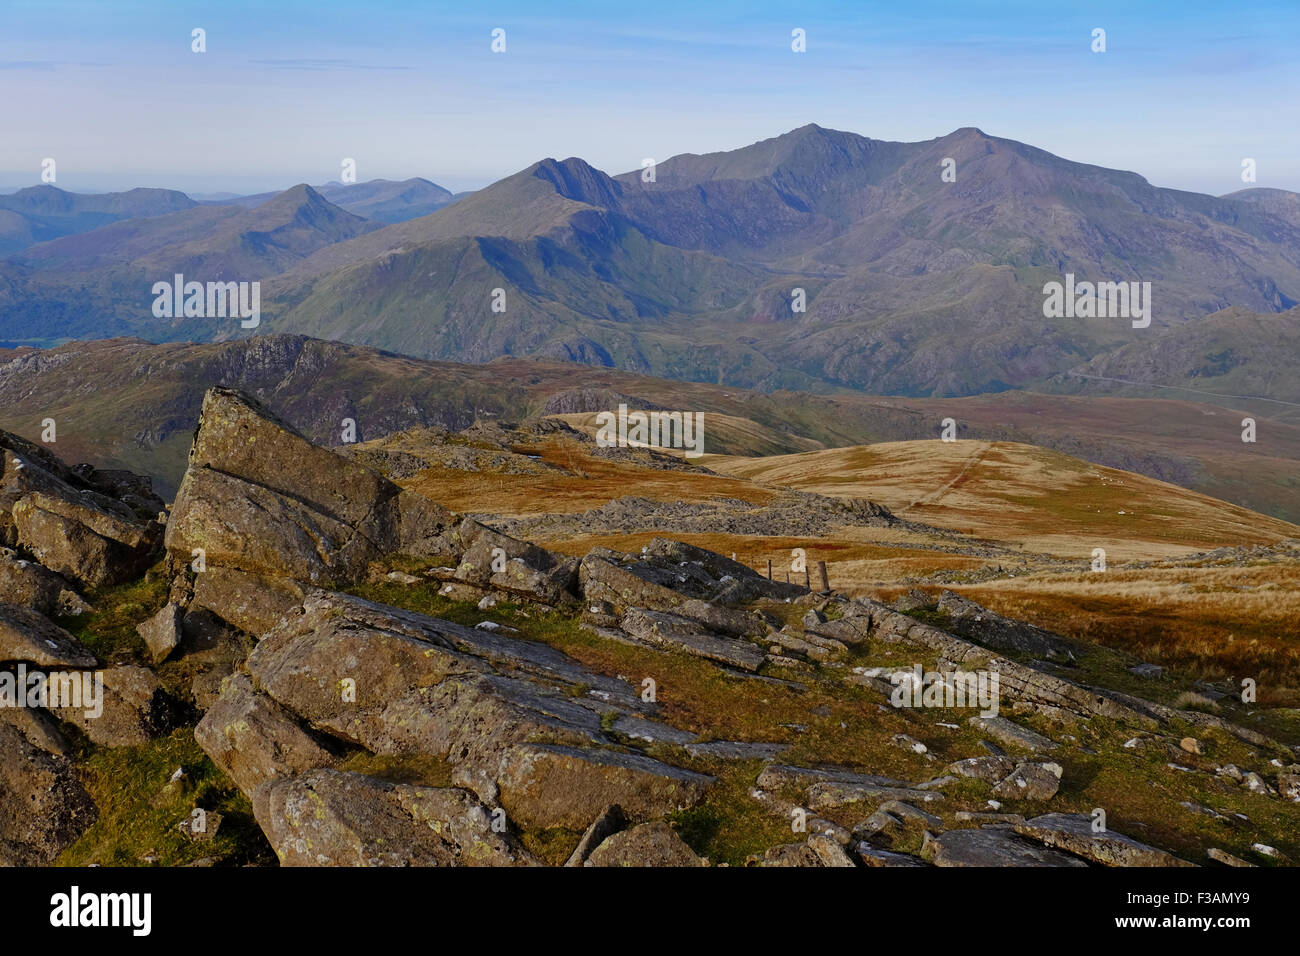 The Snowdon massif seen from Moel Siabod in Snowdonia, Wales Stock Photo